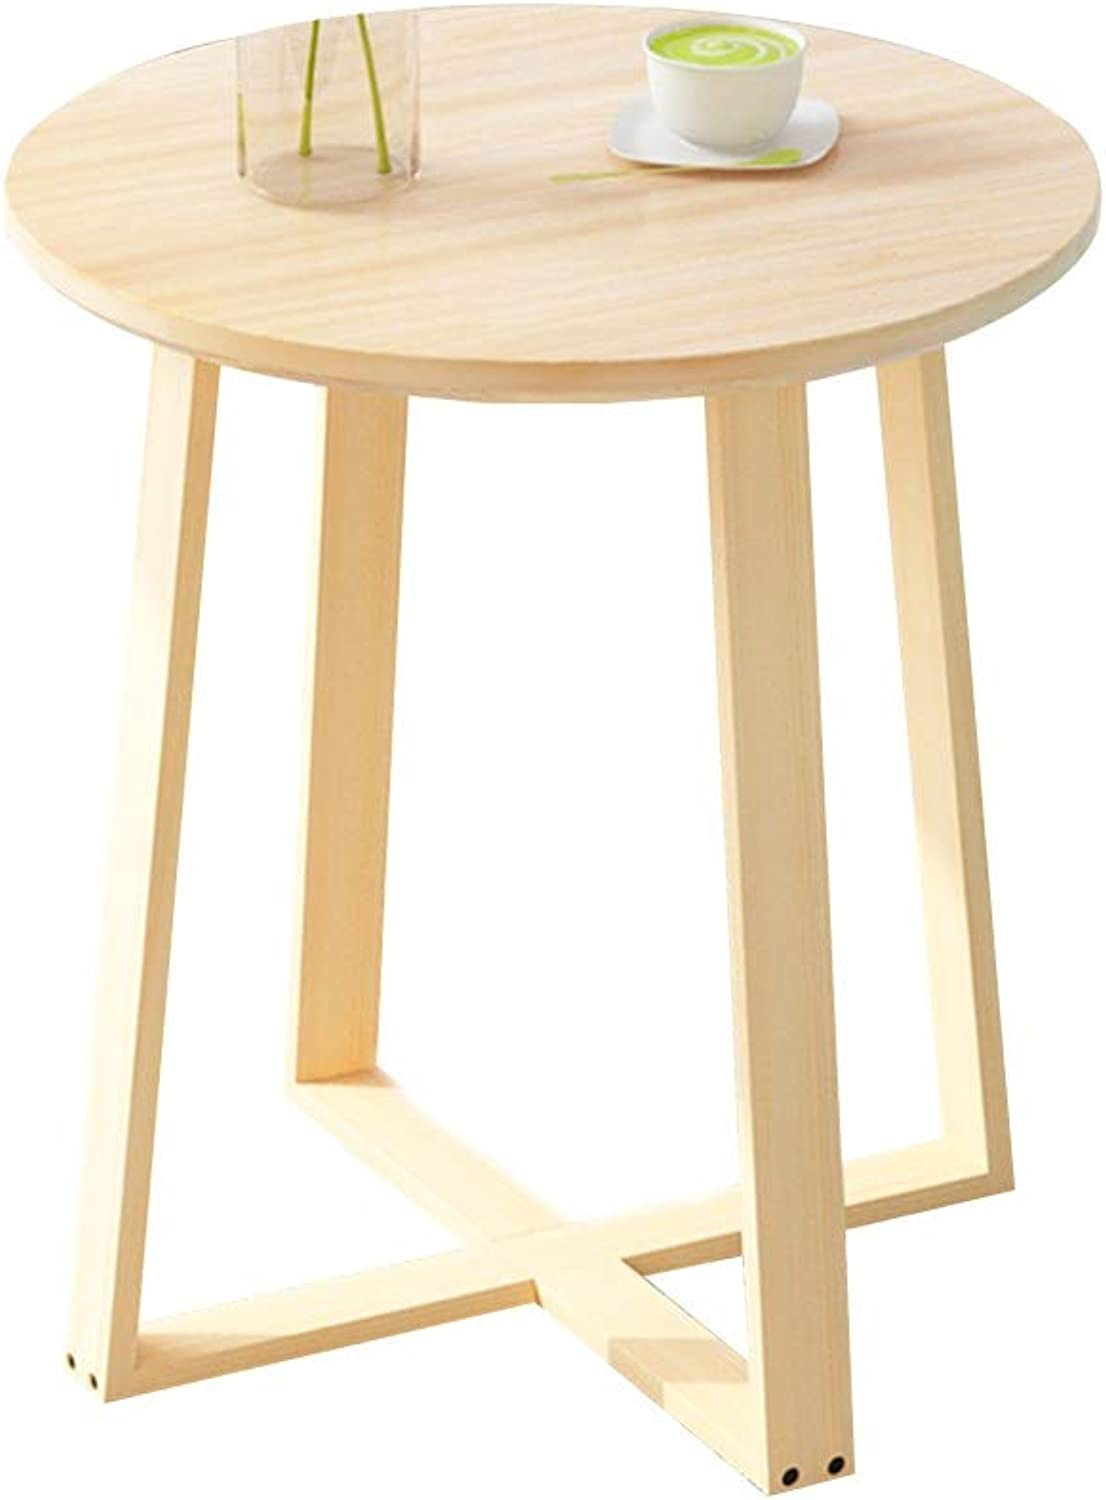 Coffee Table Side Table, Multipurpose Mobile Snack Table Small Apartment Mini Small Coffee Table Household Living Room Small Round Table (Size   40  40  50cm)